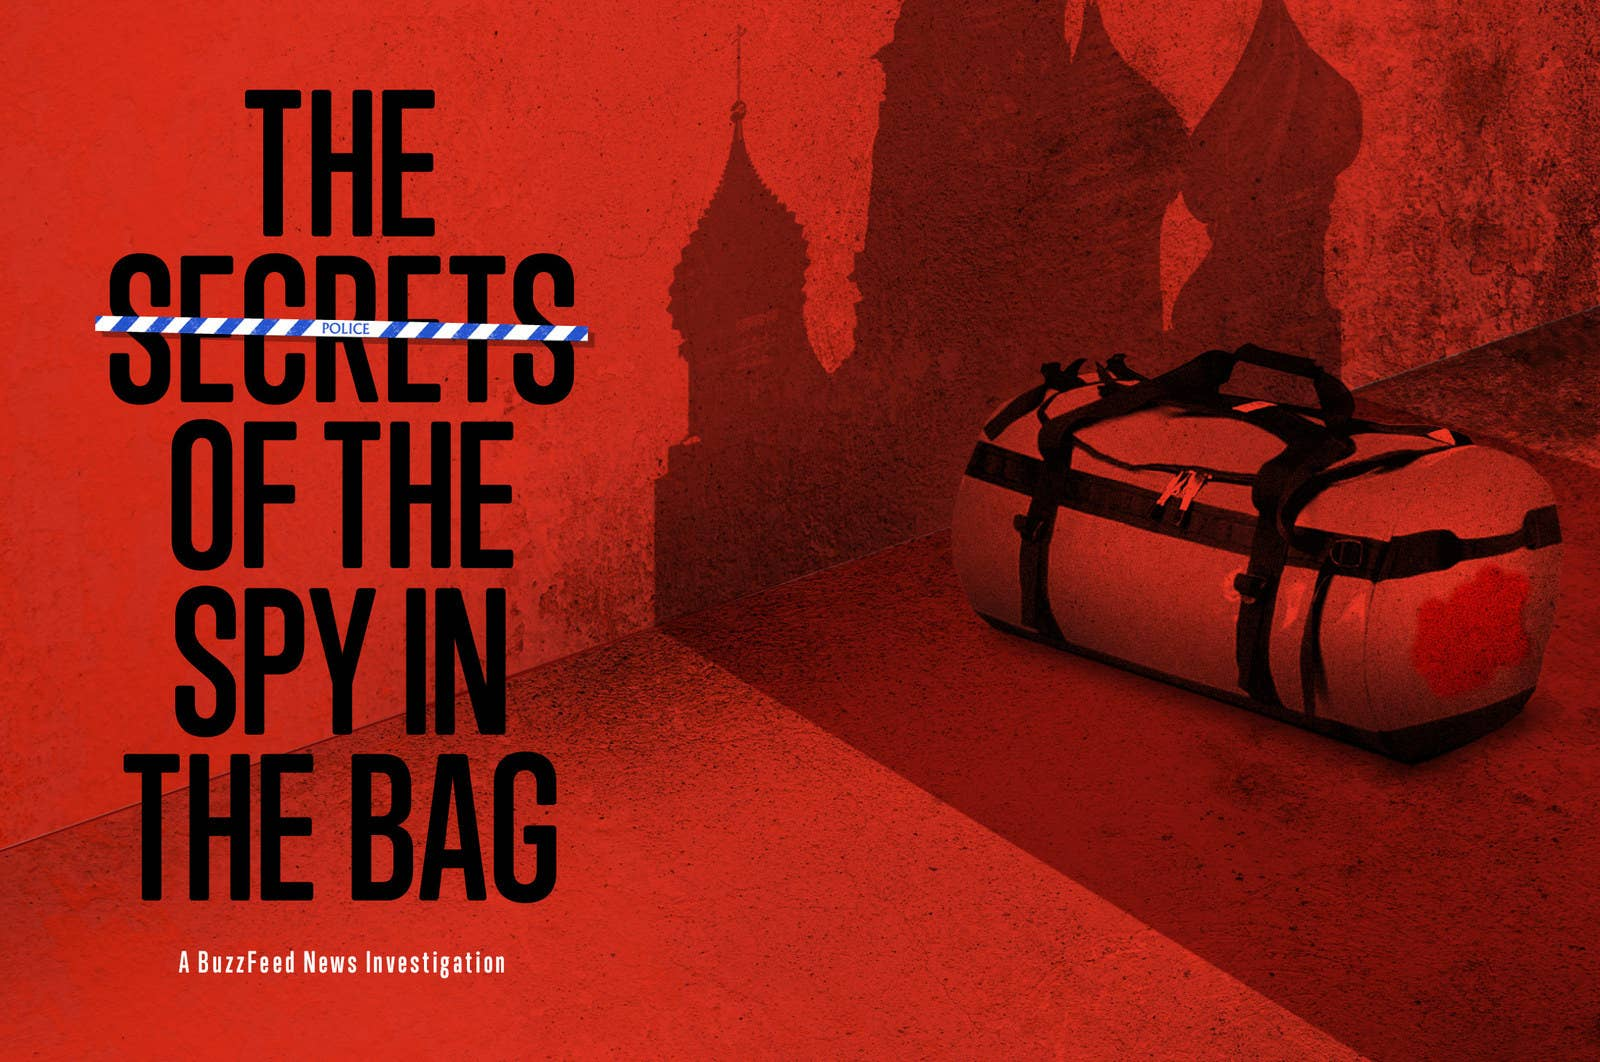 9c1c5a52cee6 The Death Of The Spy In The Bag Is Linked To Russia By Secret ...